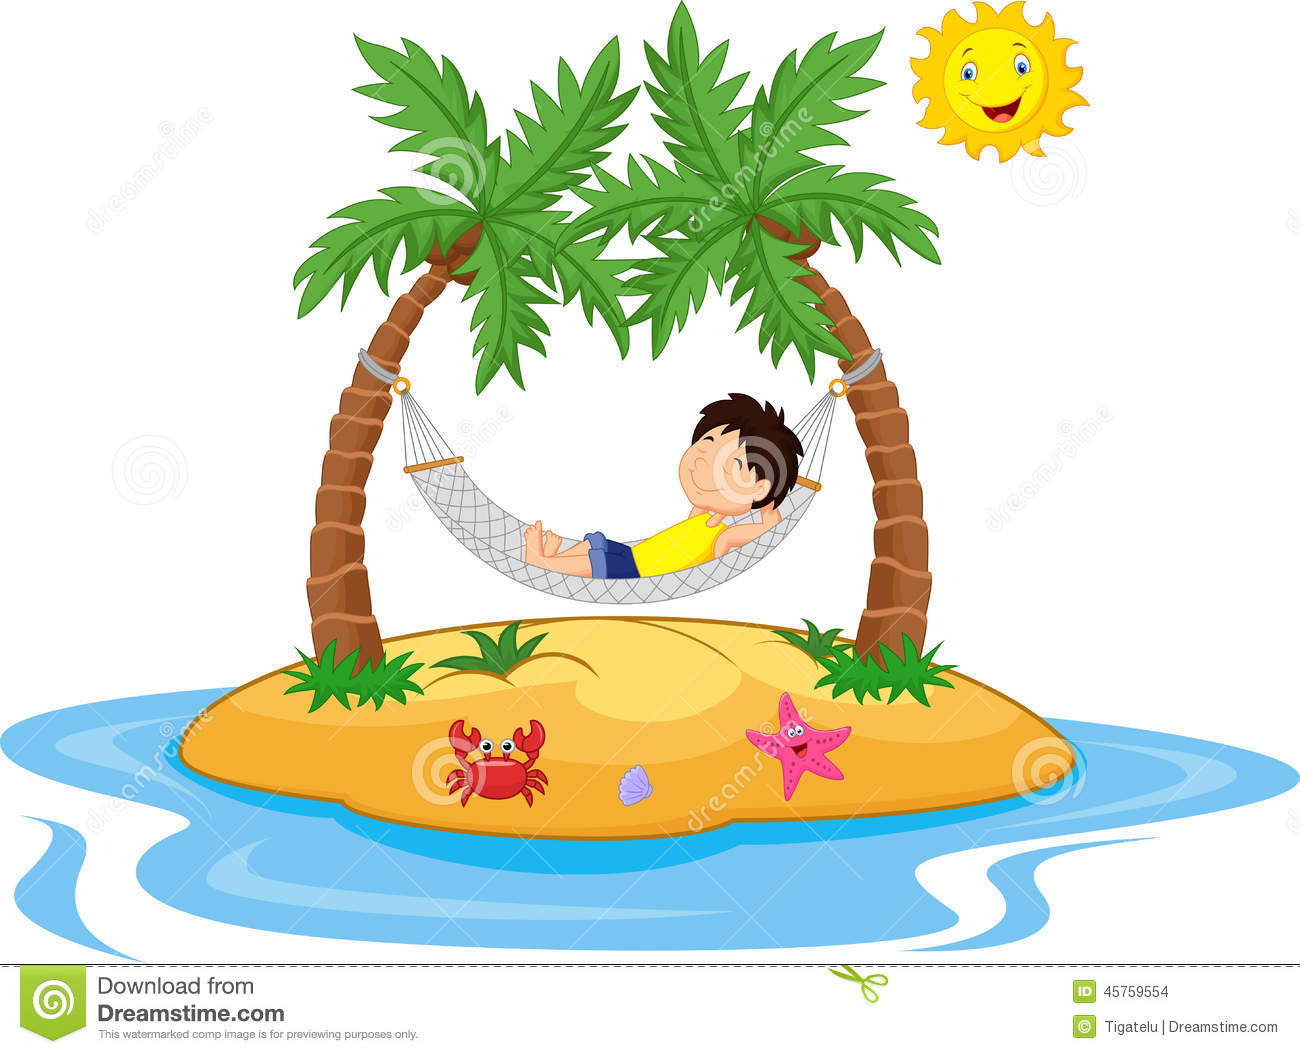 Boy Cartoon Relaxing In A Hammock Stock Vector - Image: 45759554